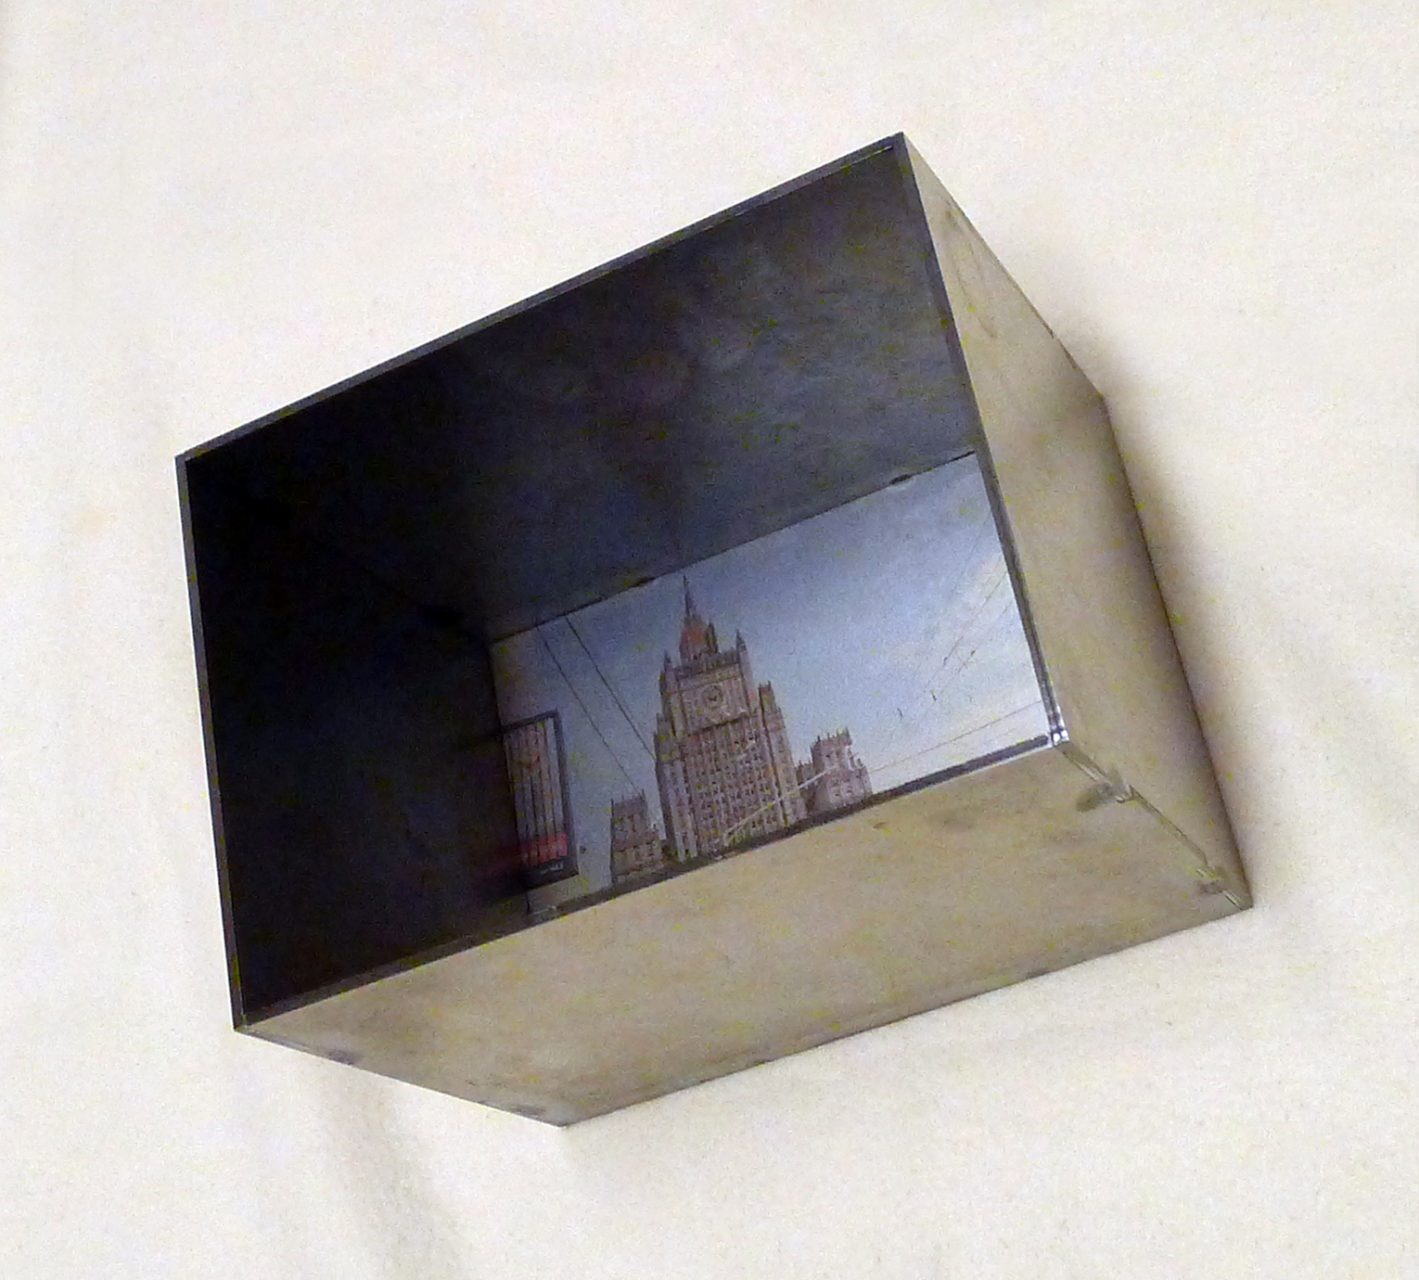 Untitled (Moskva), steel, photography on steel, variable sizes, 2012